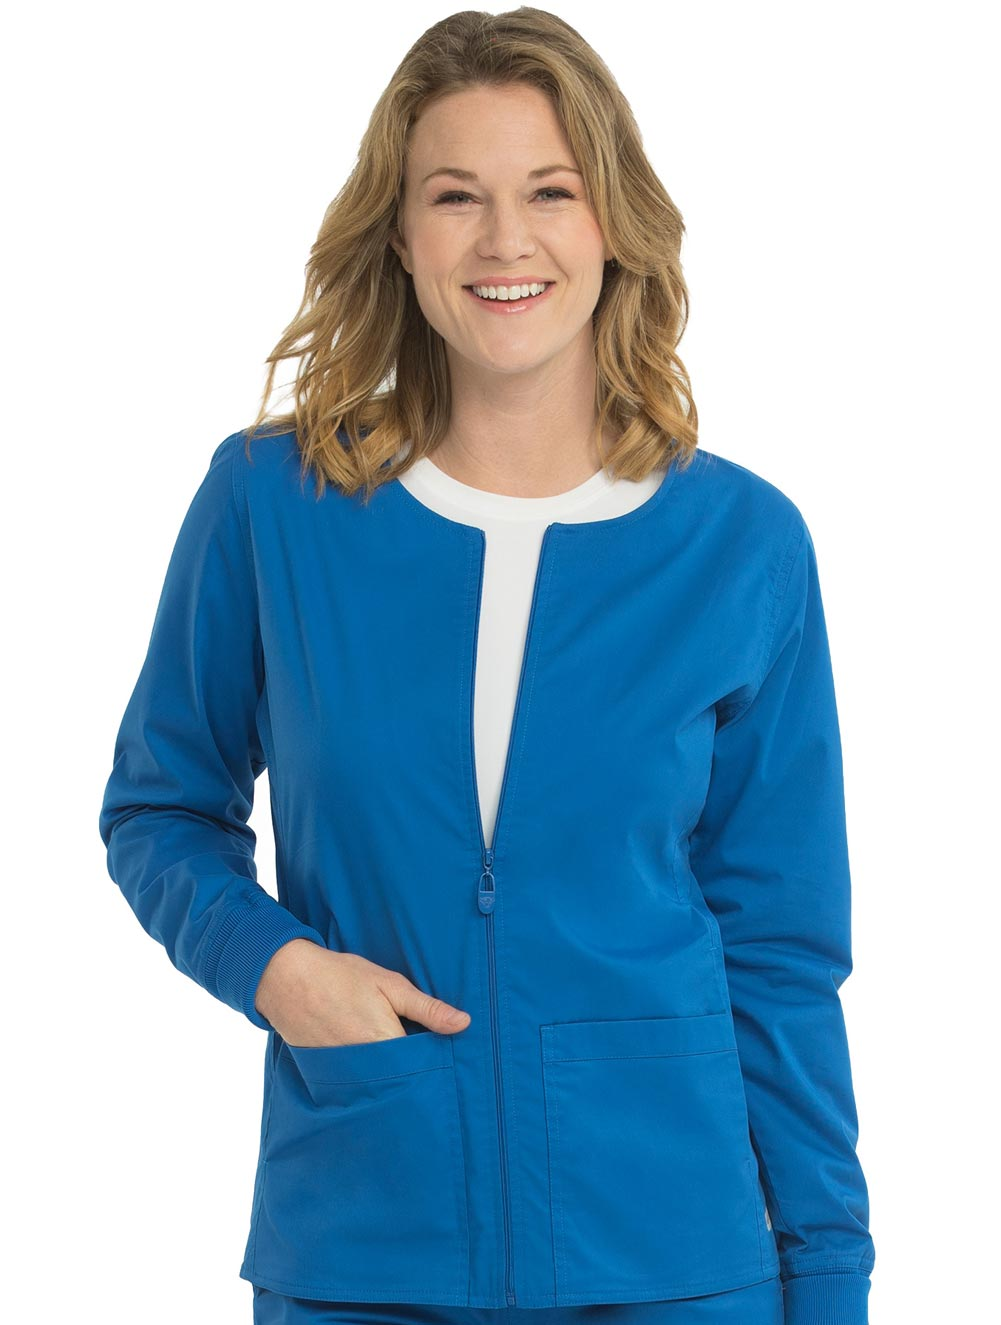 Women's 2-Pocket Zip-Front Warm Up Scrub Jacket